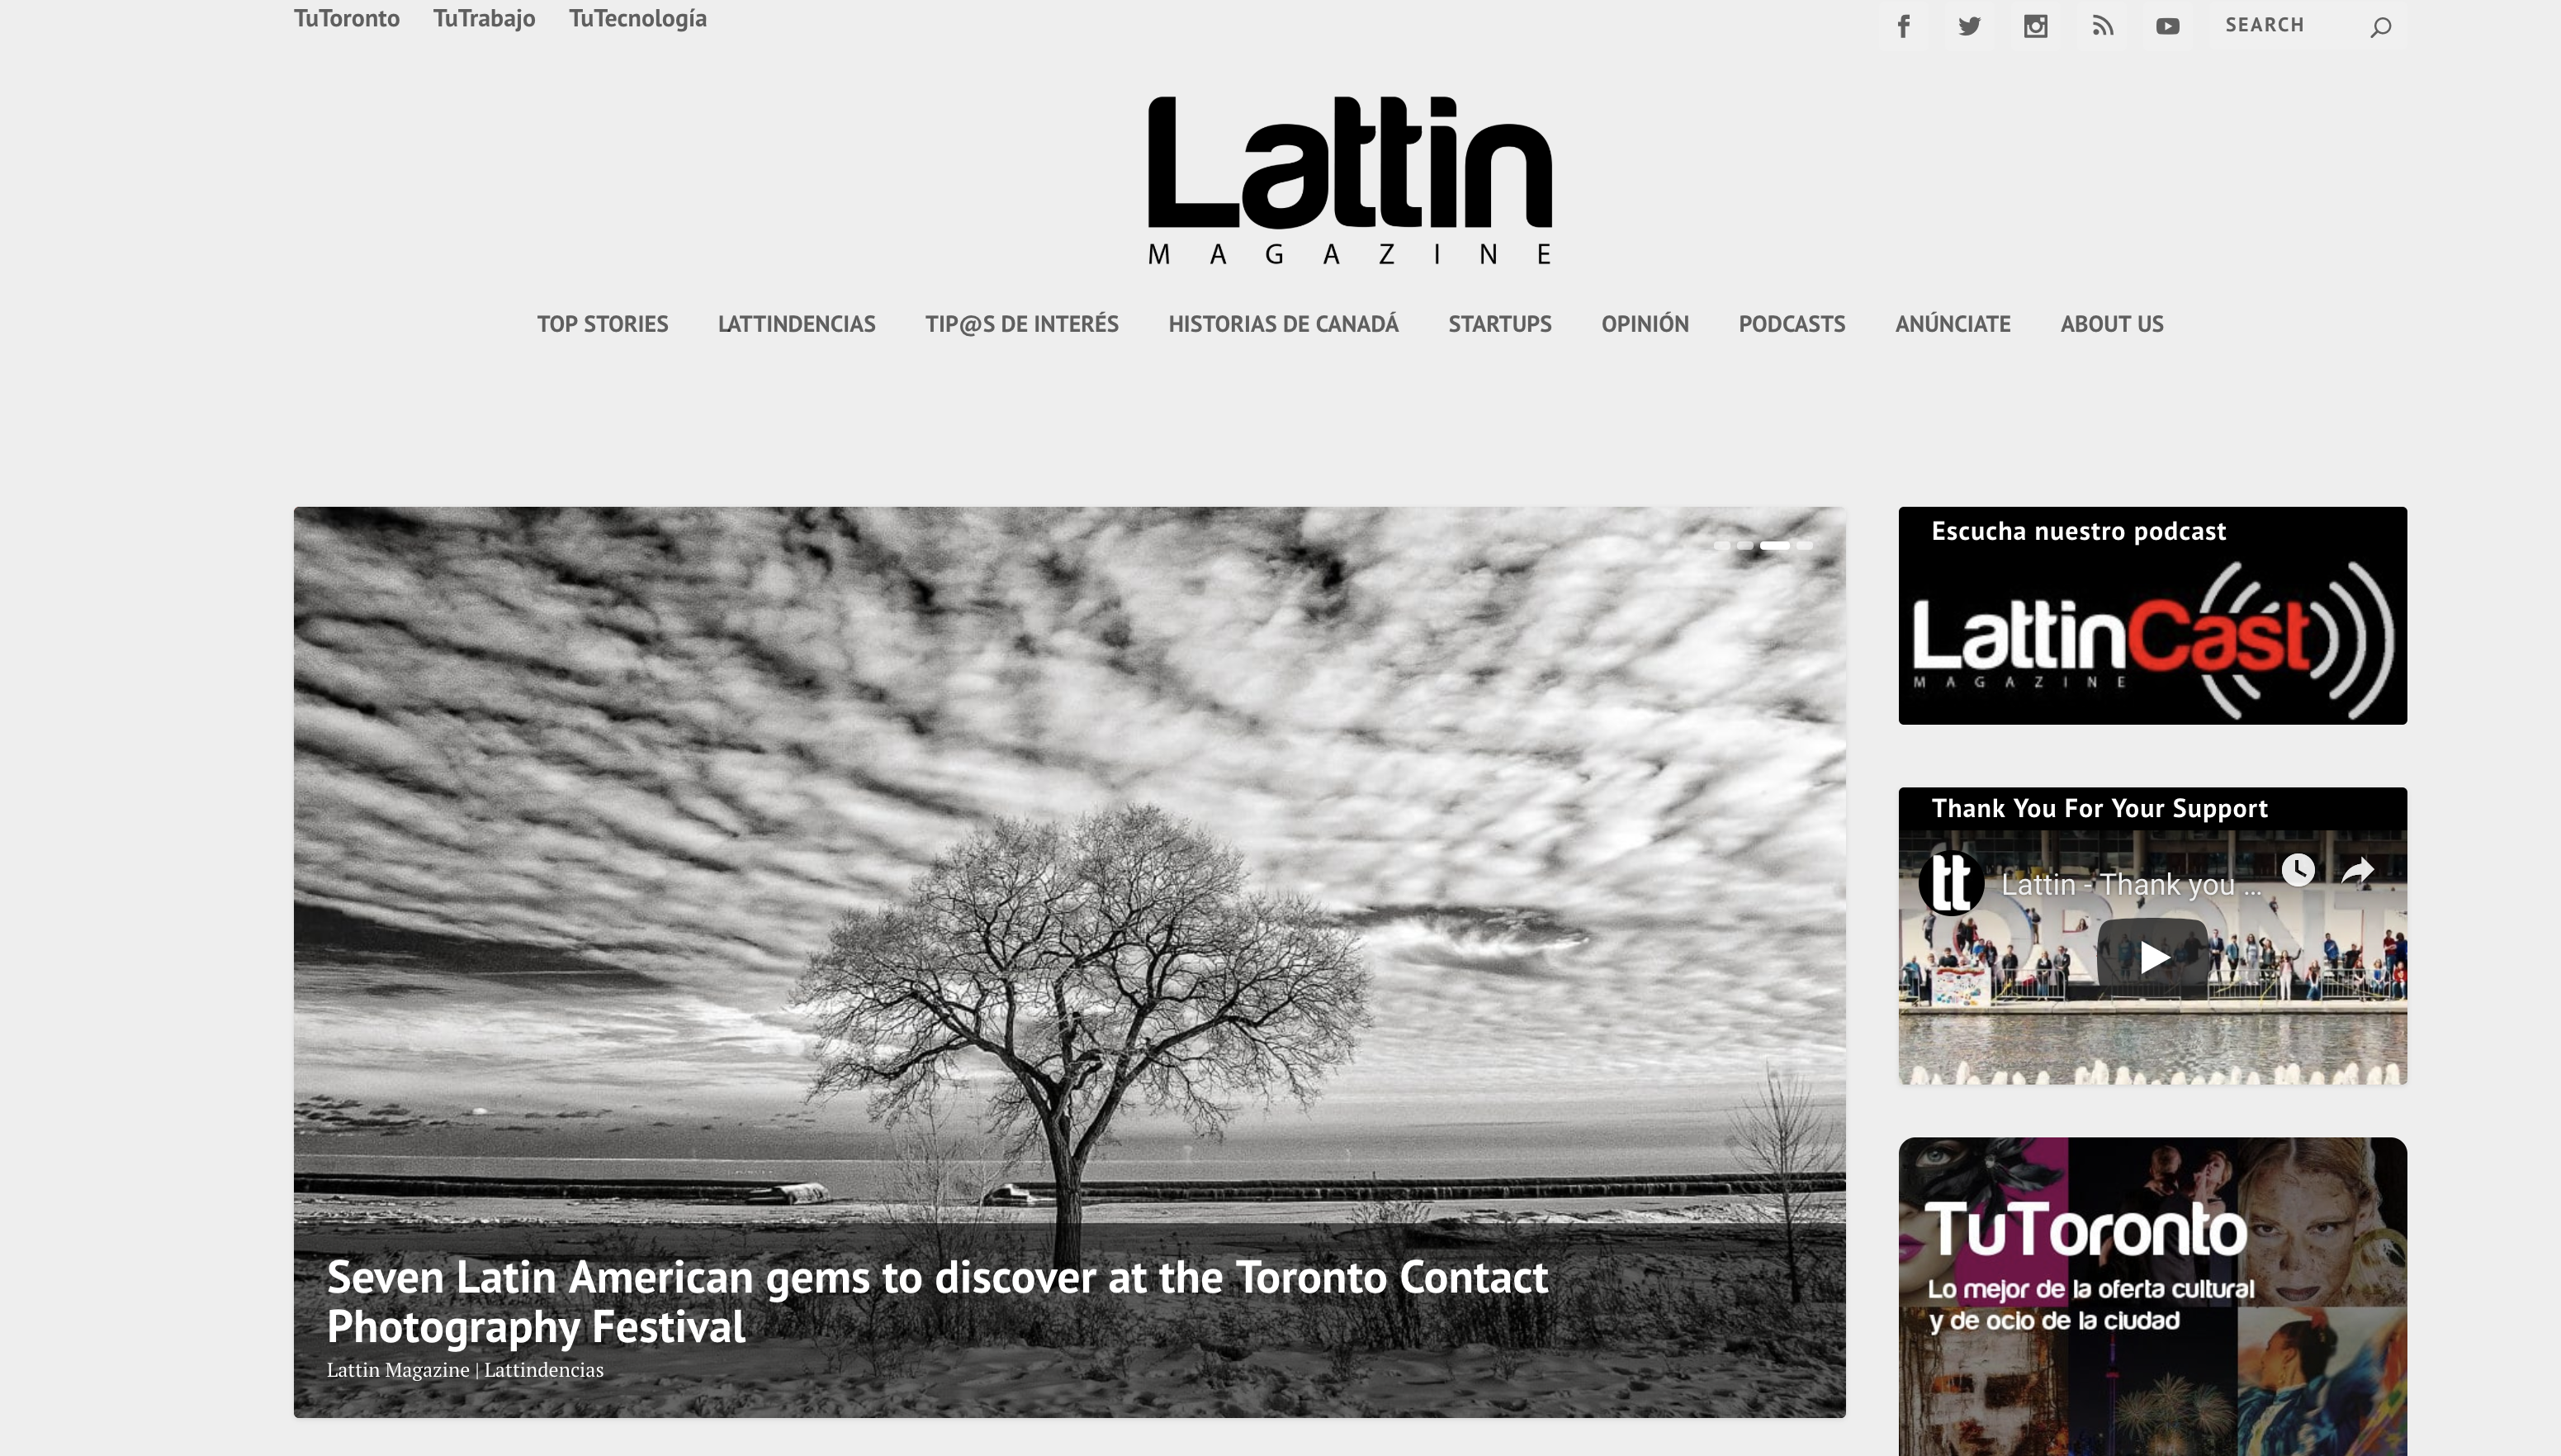 THANK YOU   LATTIN . magazine #CubaLIBRE2019 & #BackToTheRoots Angel Torres CONTACT PHOTOGRAPHY FESTIVAL  PRESS